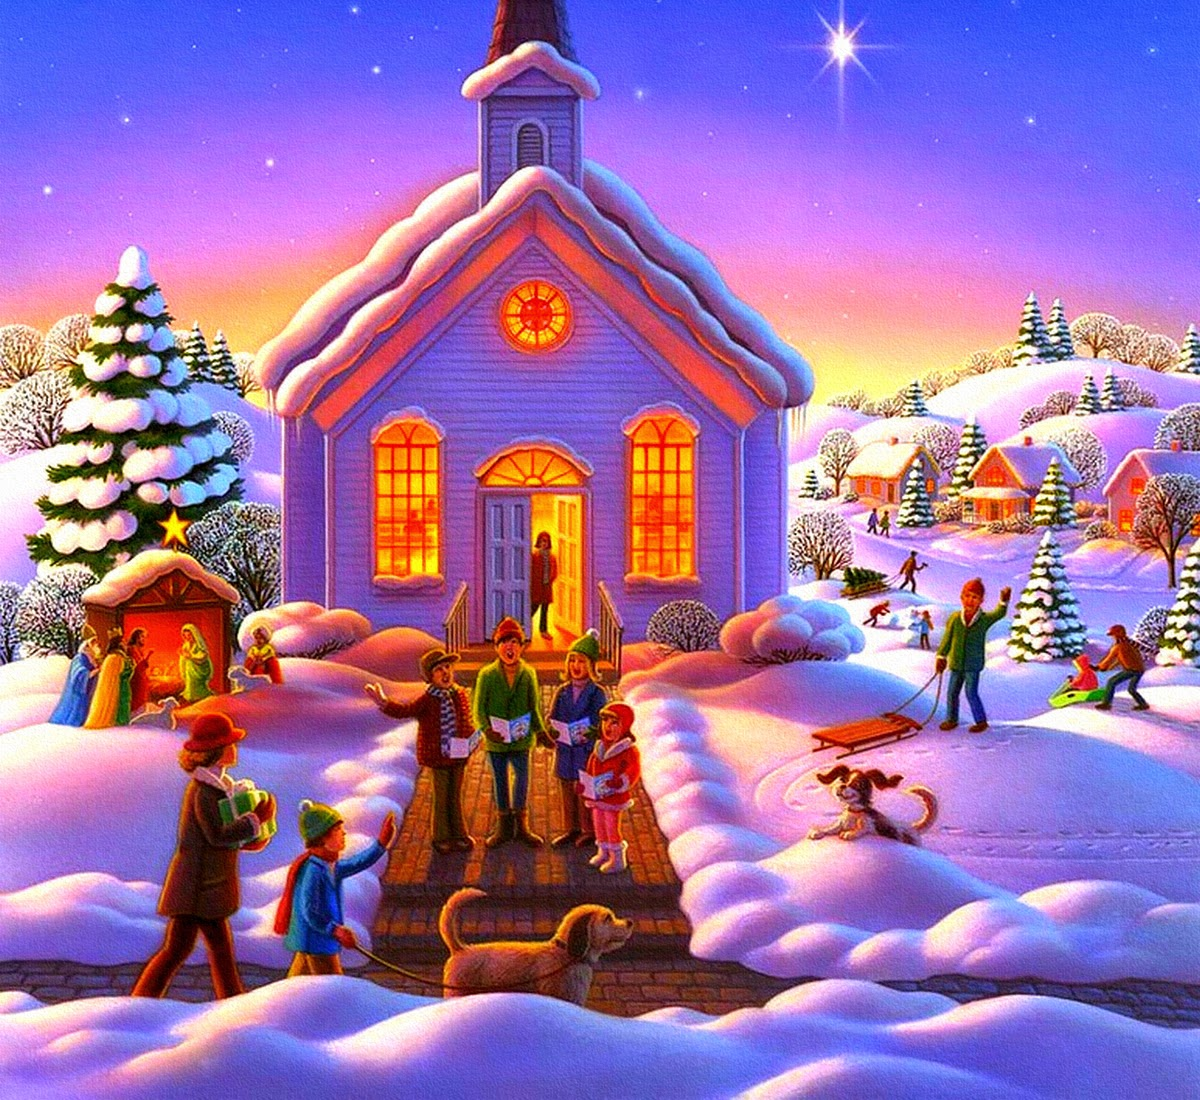 people-celebrating-christmas-in-country-side-church-vintage-style-painting-drawing-image-1200x1100.jpg